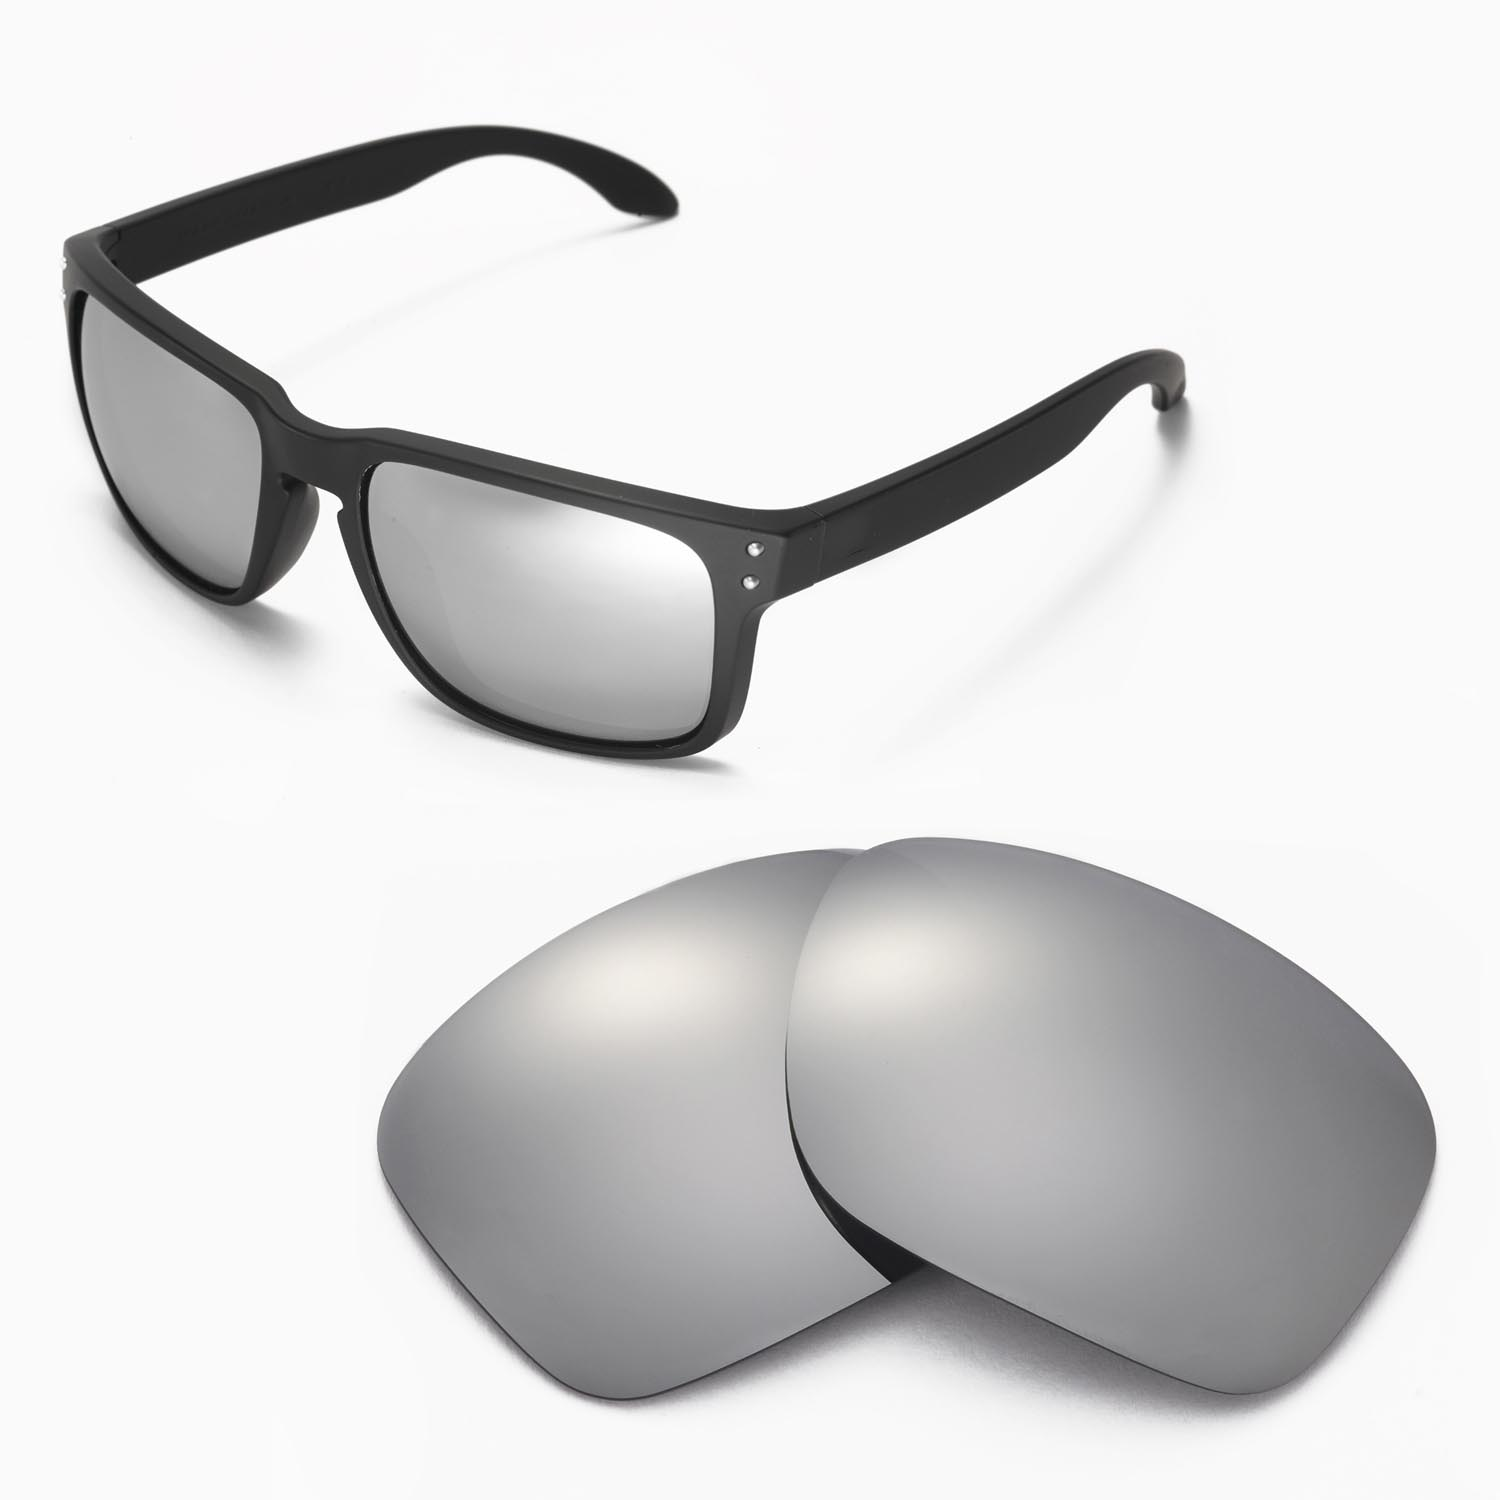 07b3b89adbf Details about New Walleva Titanium Replacement Lenses For Oakley Holbrook  Sunglasses